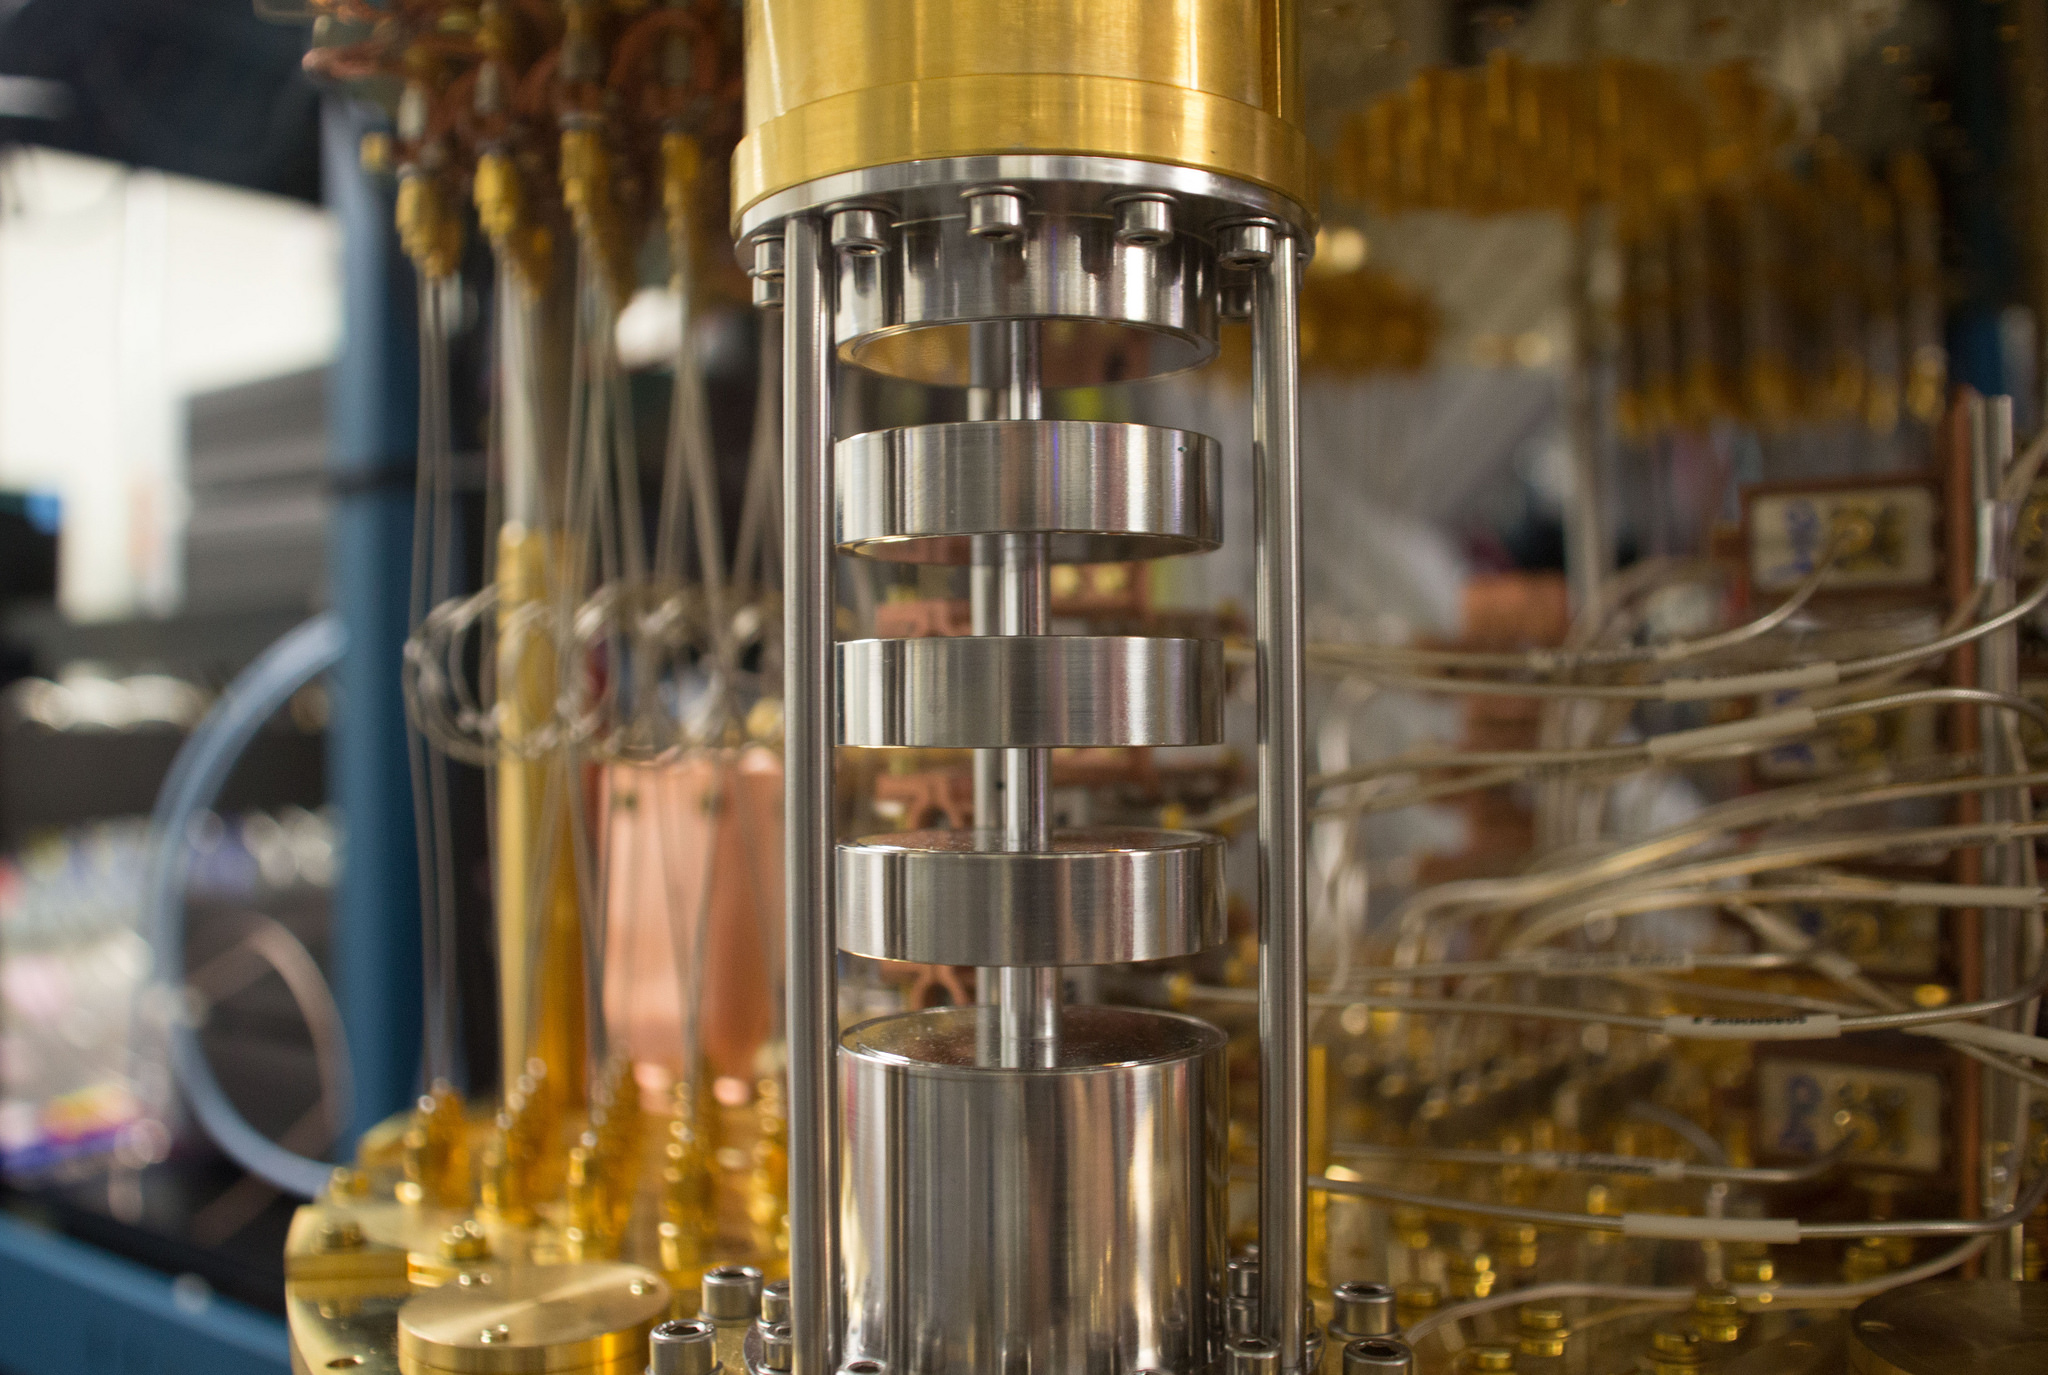 Quantum Computer Mixing Chamber - Image Credit: IBM Research via flickr